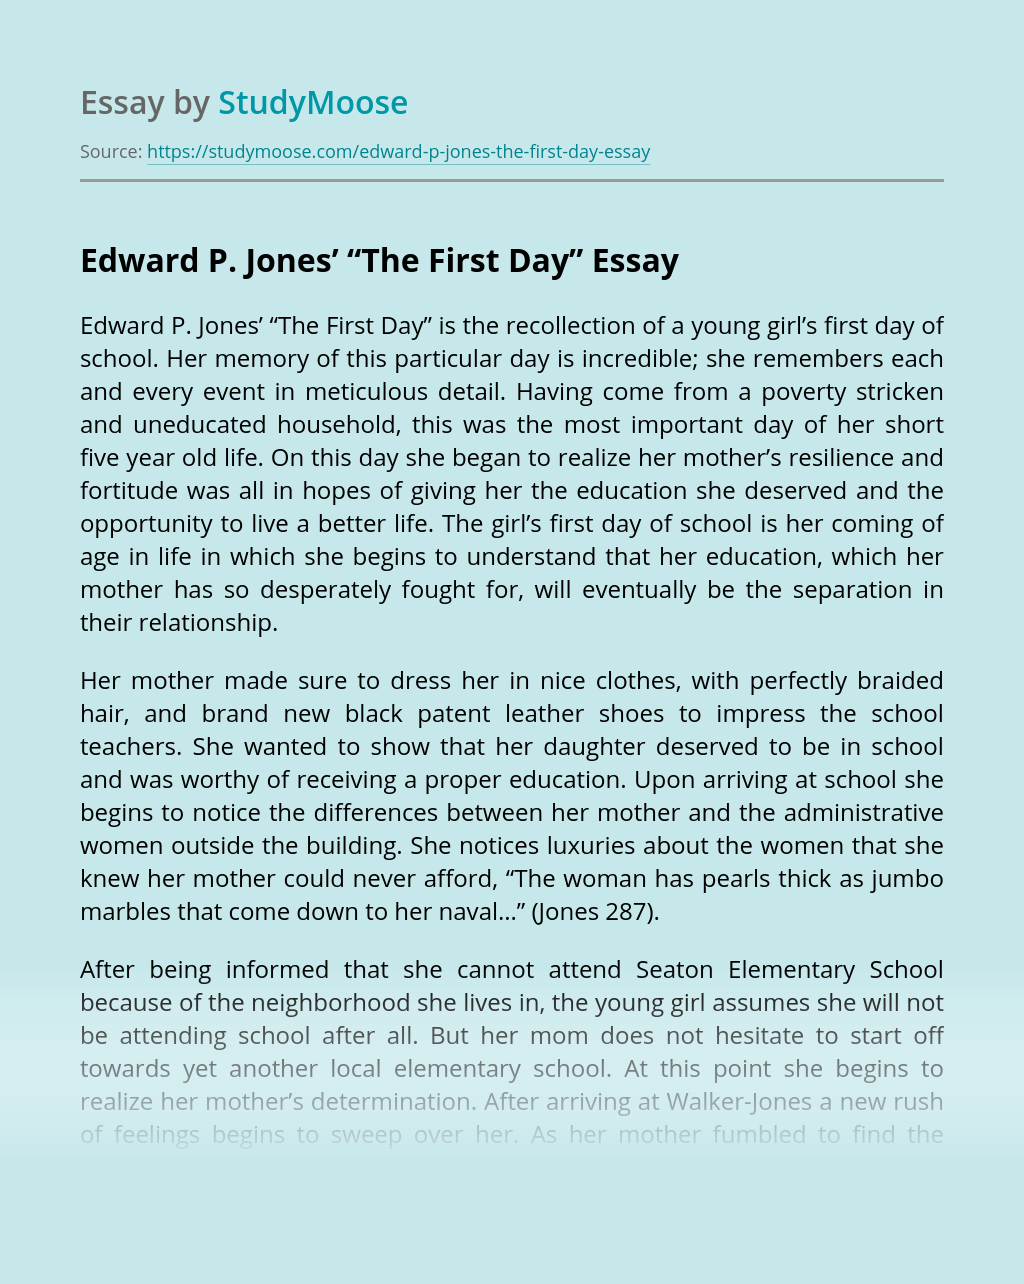 """Edward P. Jones' """"The First Day"""""""